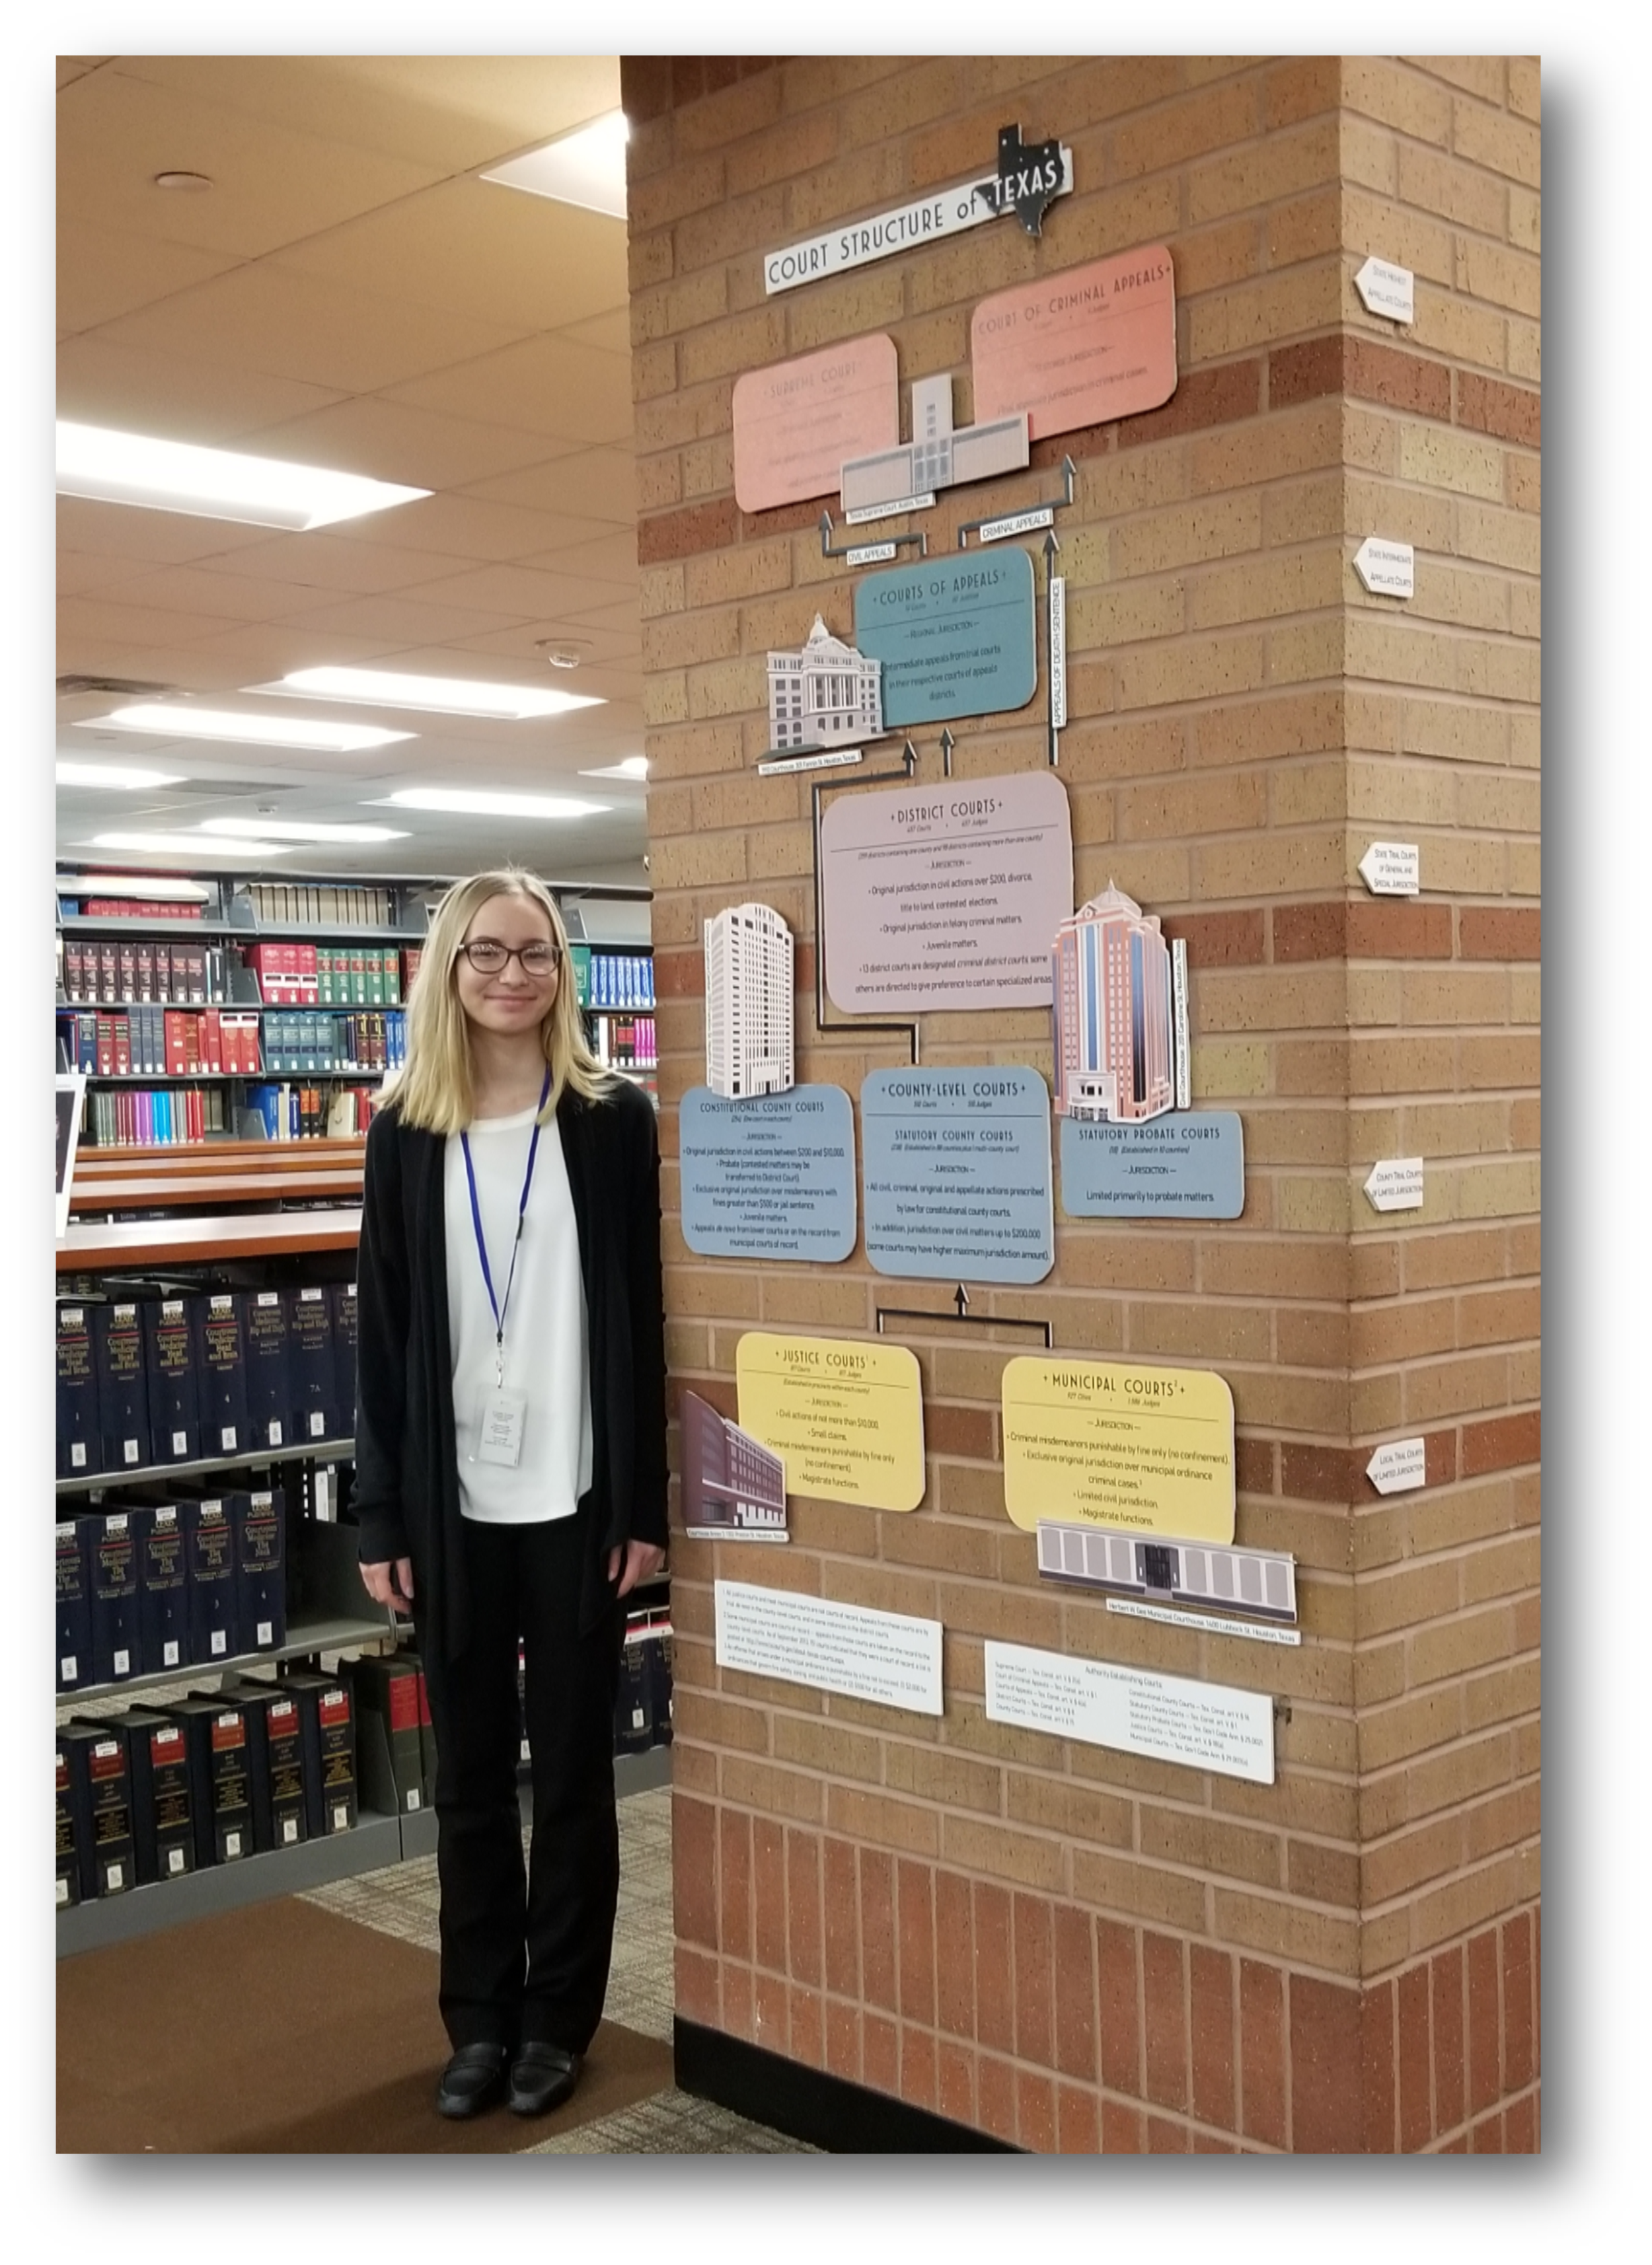 Helen Hartman (Harris County Commissioner Precinct One LEE Intern) poses next to her artwork at the Harris County Law Library.